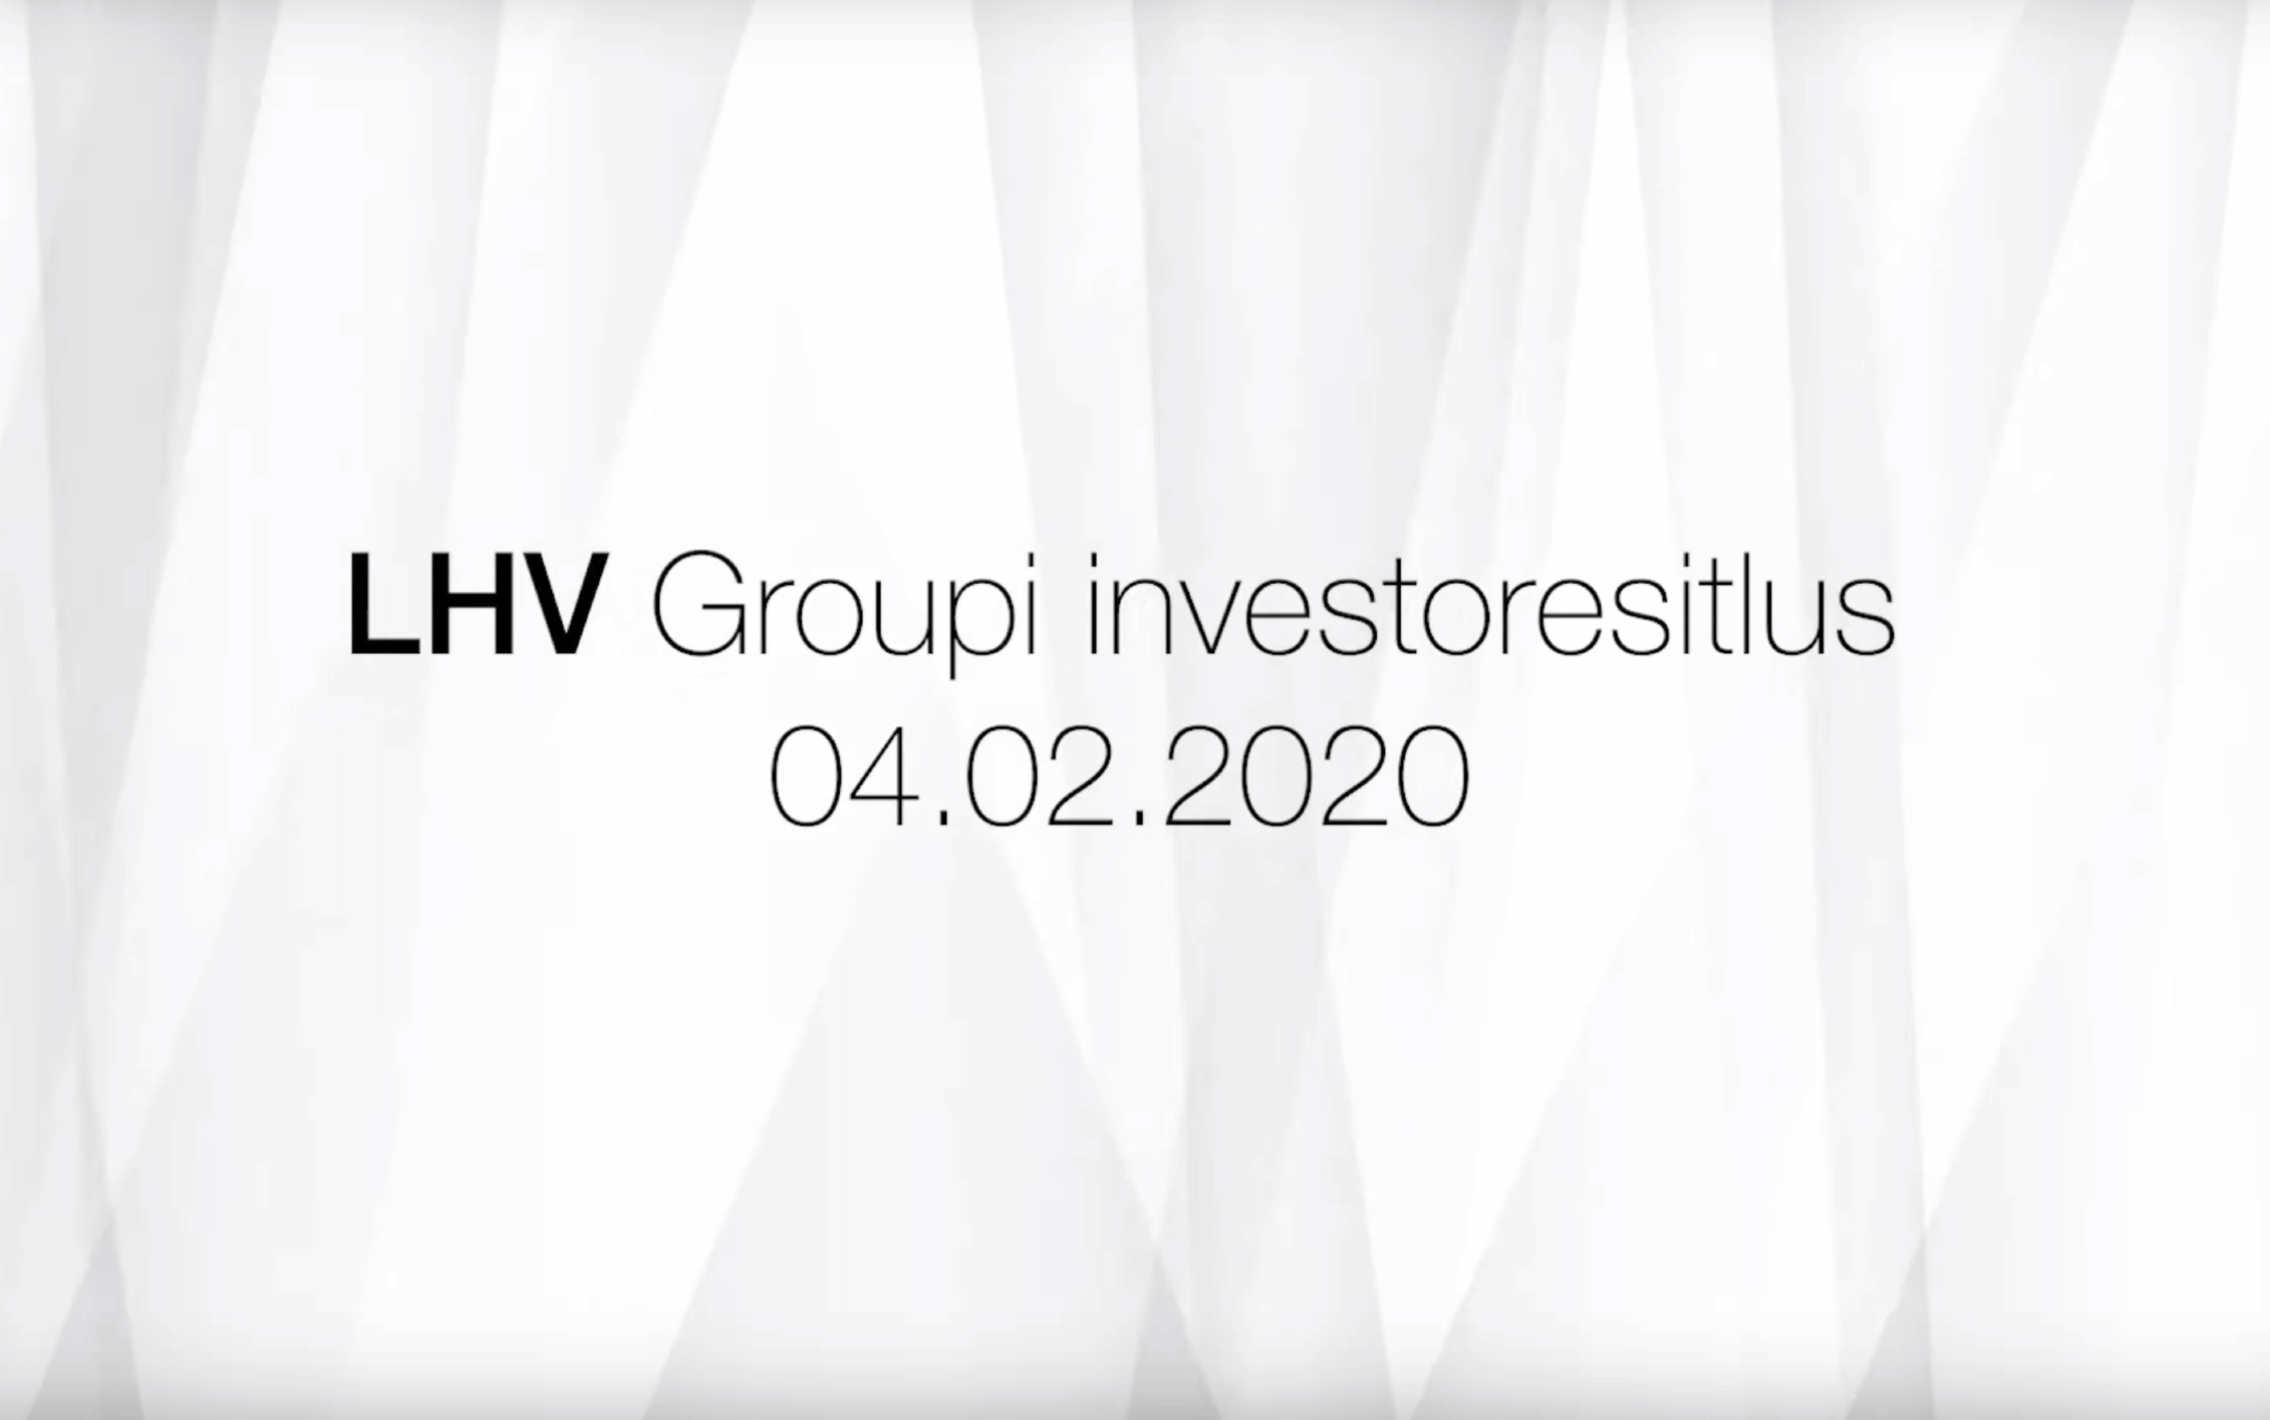 LHV Group презентация для инвесторов 04.02.2020